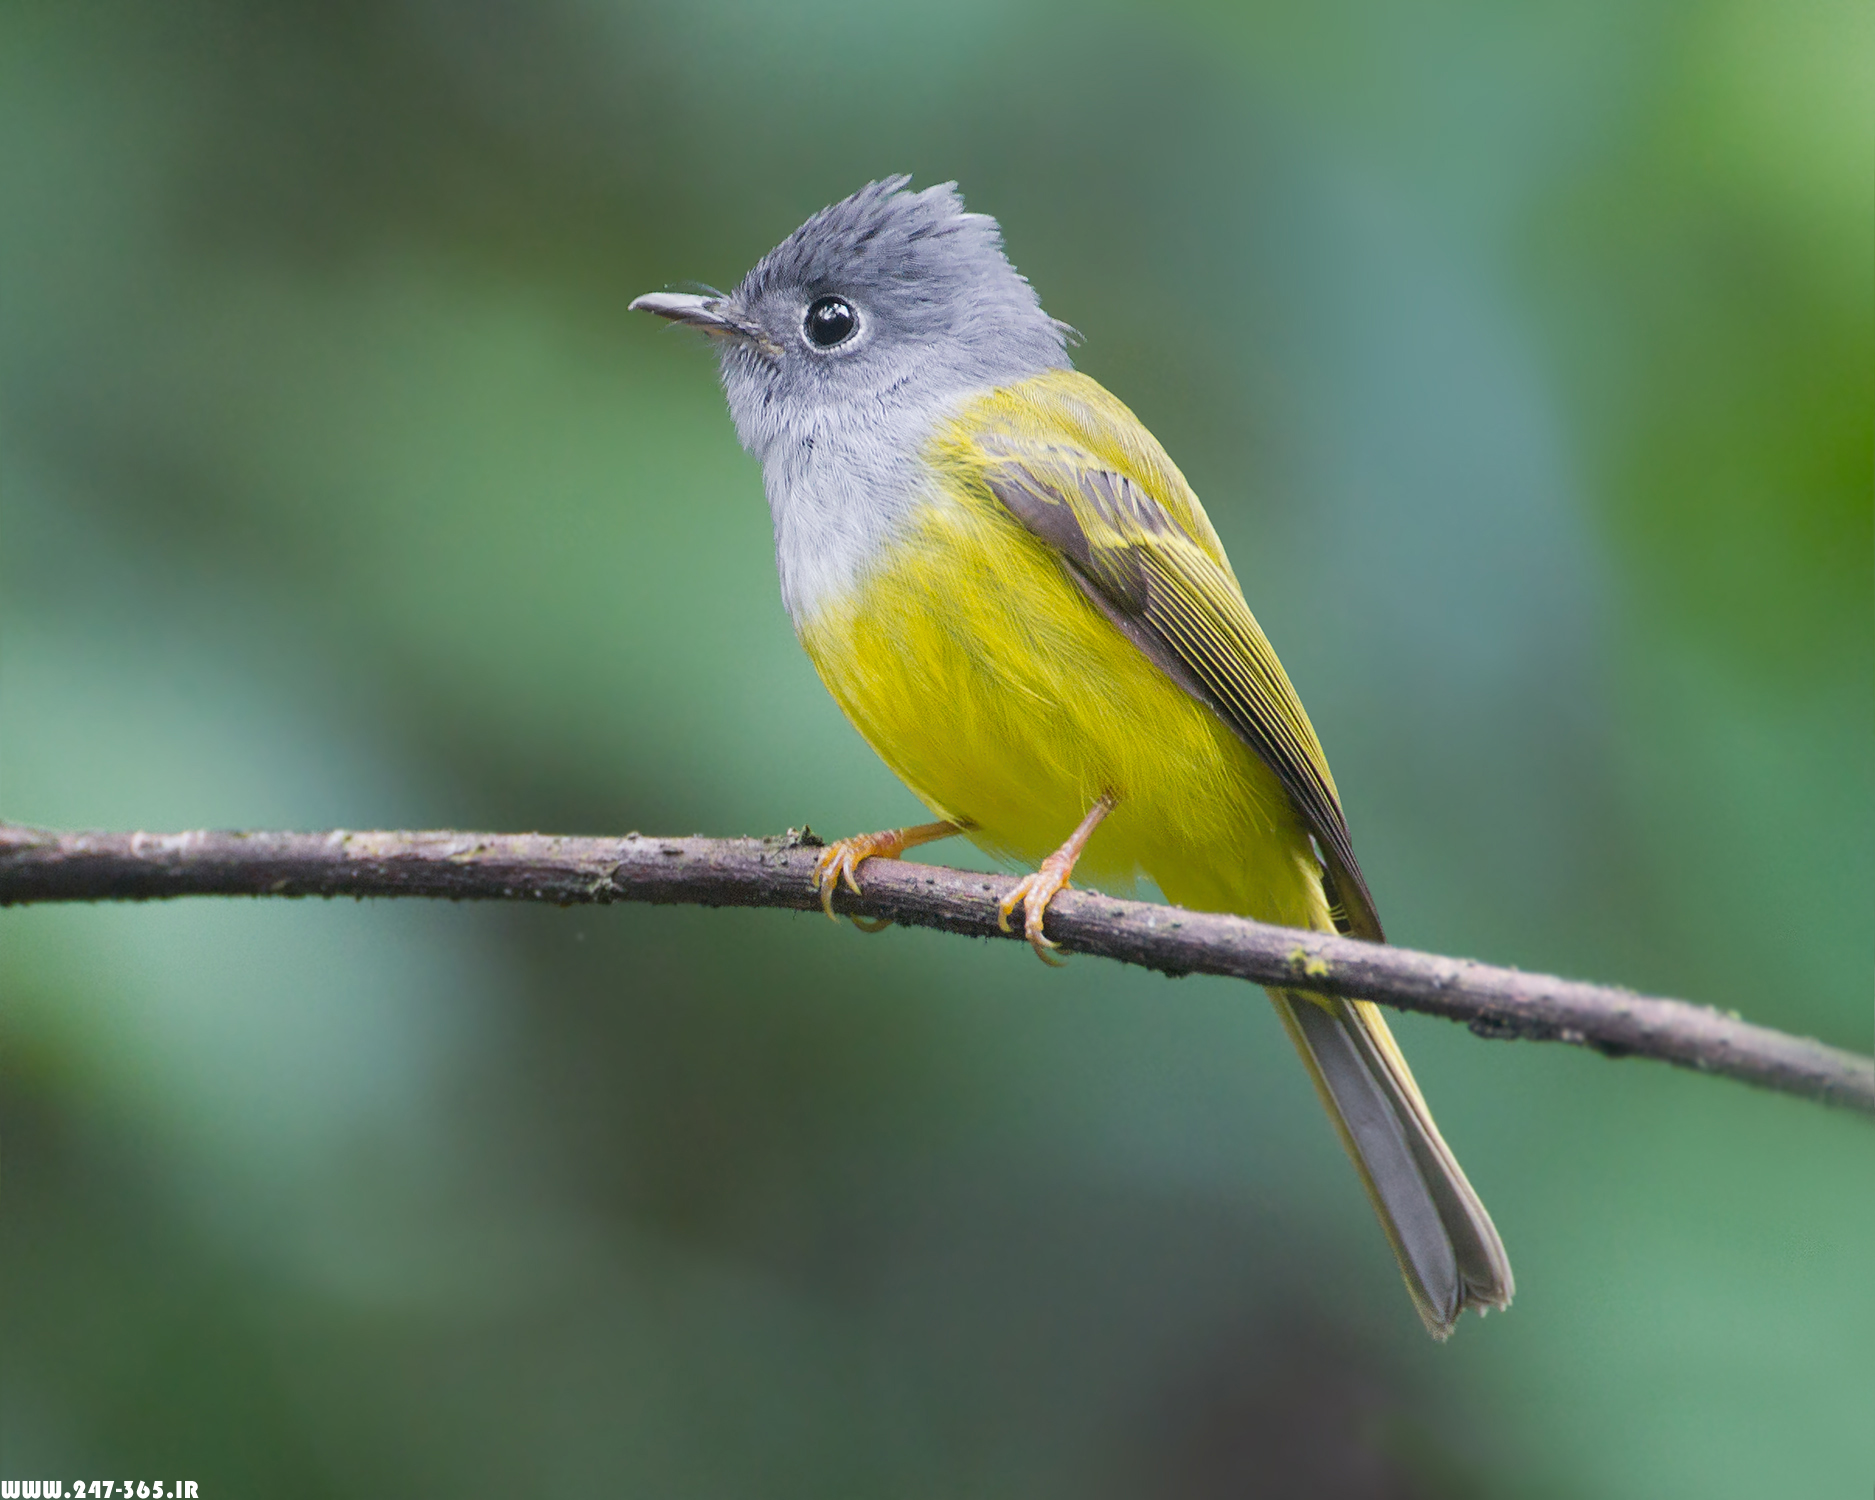 http://dl.247-365.ir/pic/tak_ax/Grey-Headed_Canary-Flycatcher.jpg